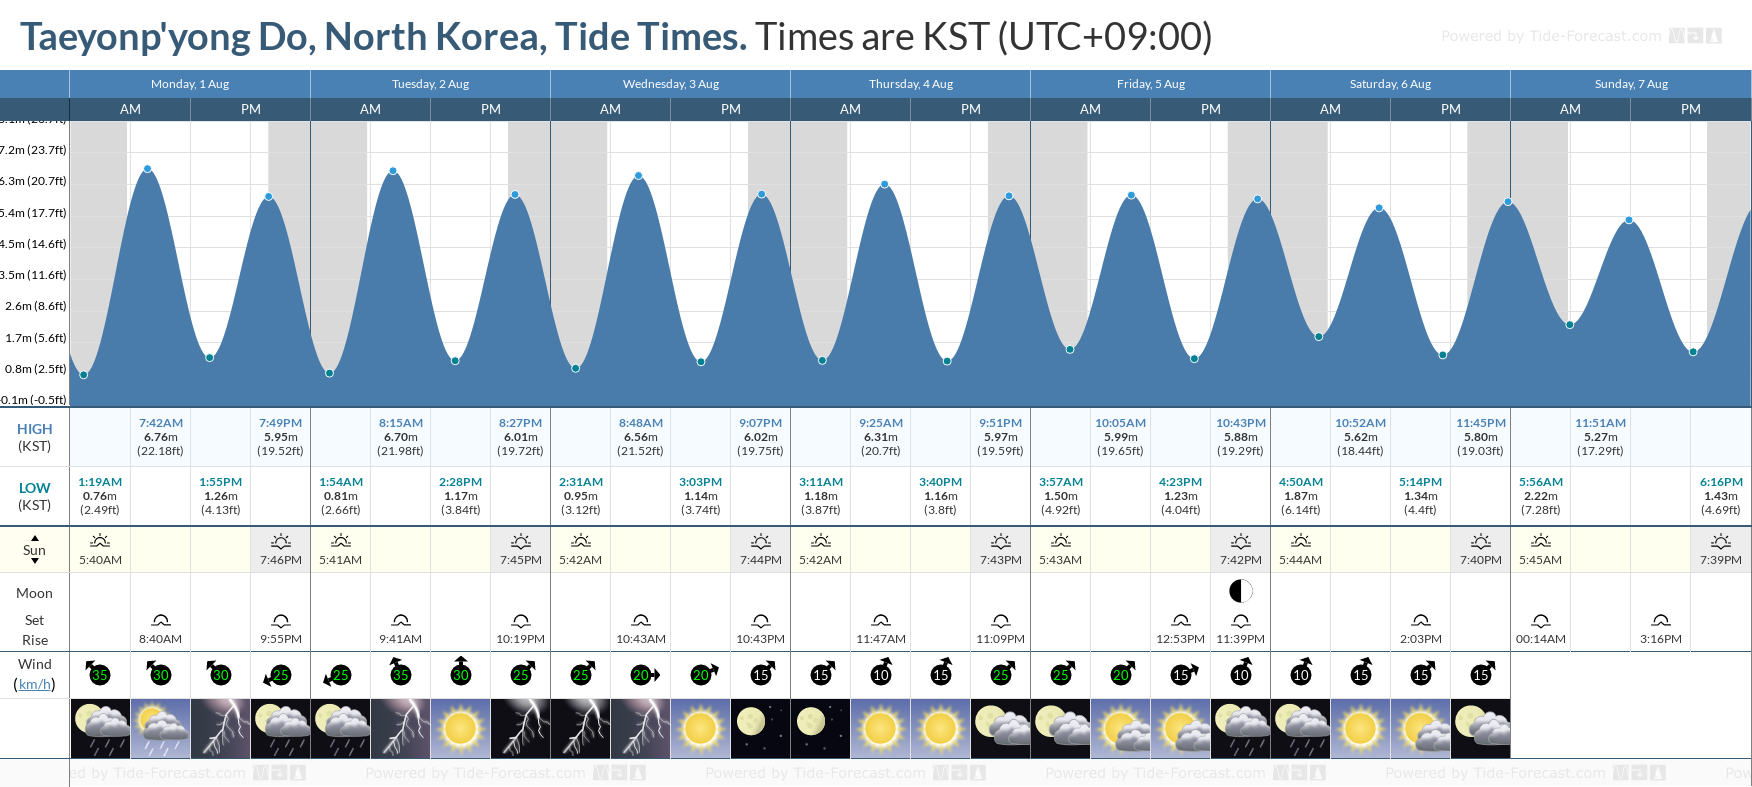 Taeyonp'yong Do, North Korea Tide Chart including high and low tide tide times for the next 7 days